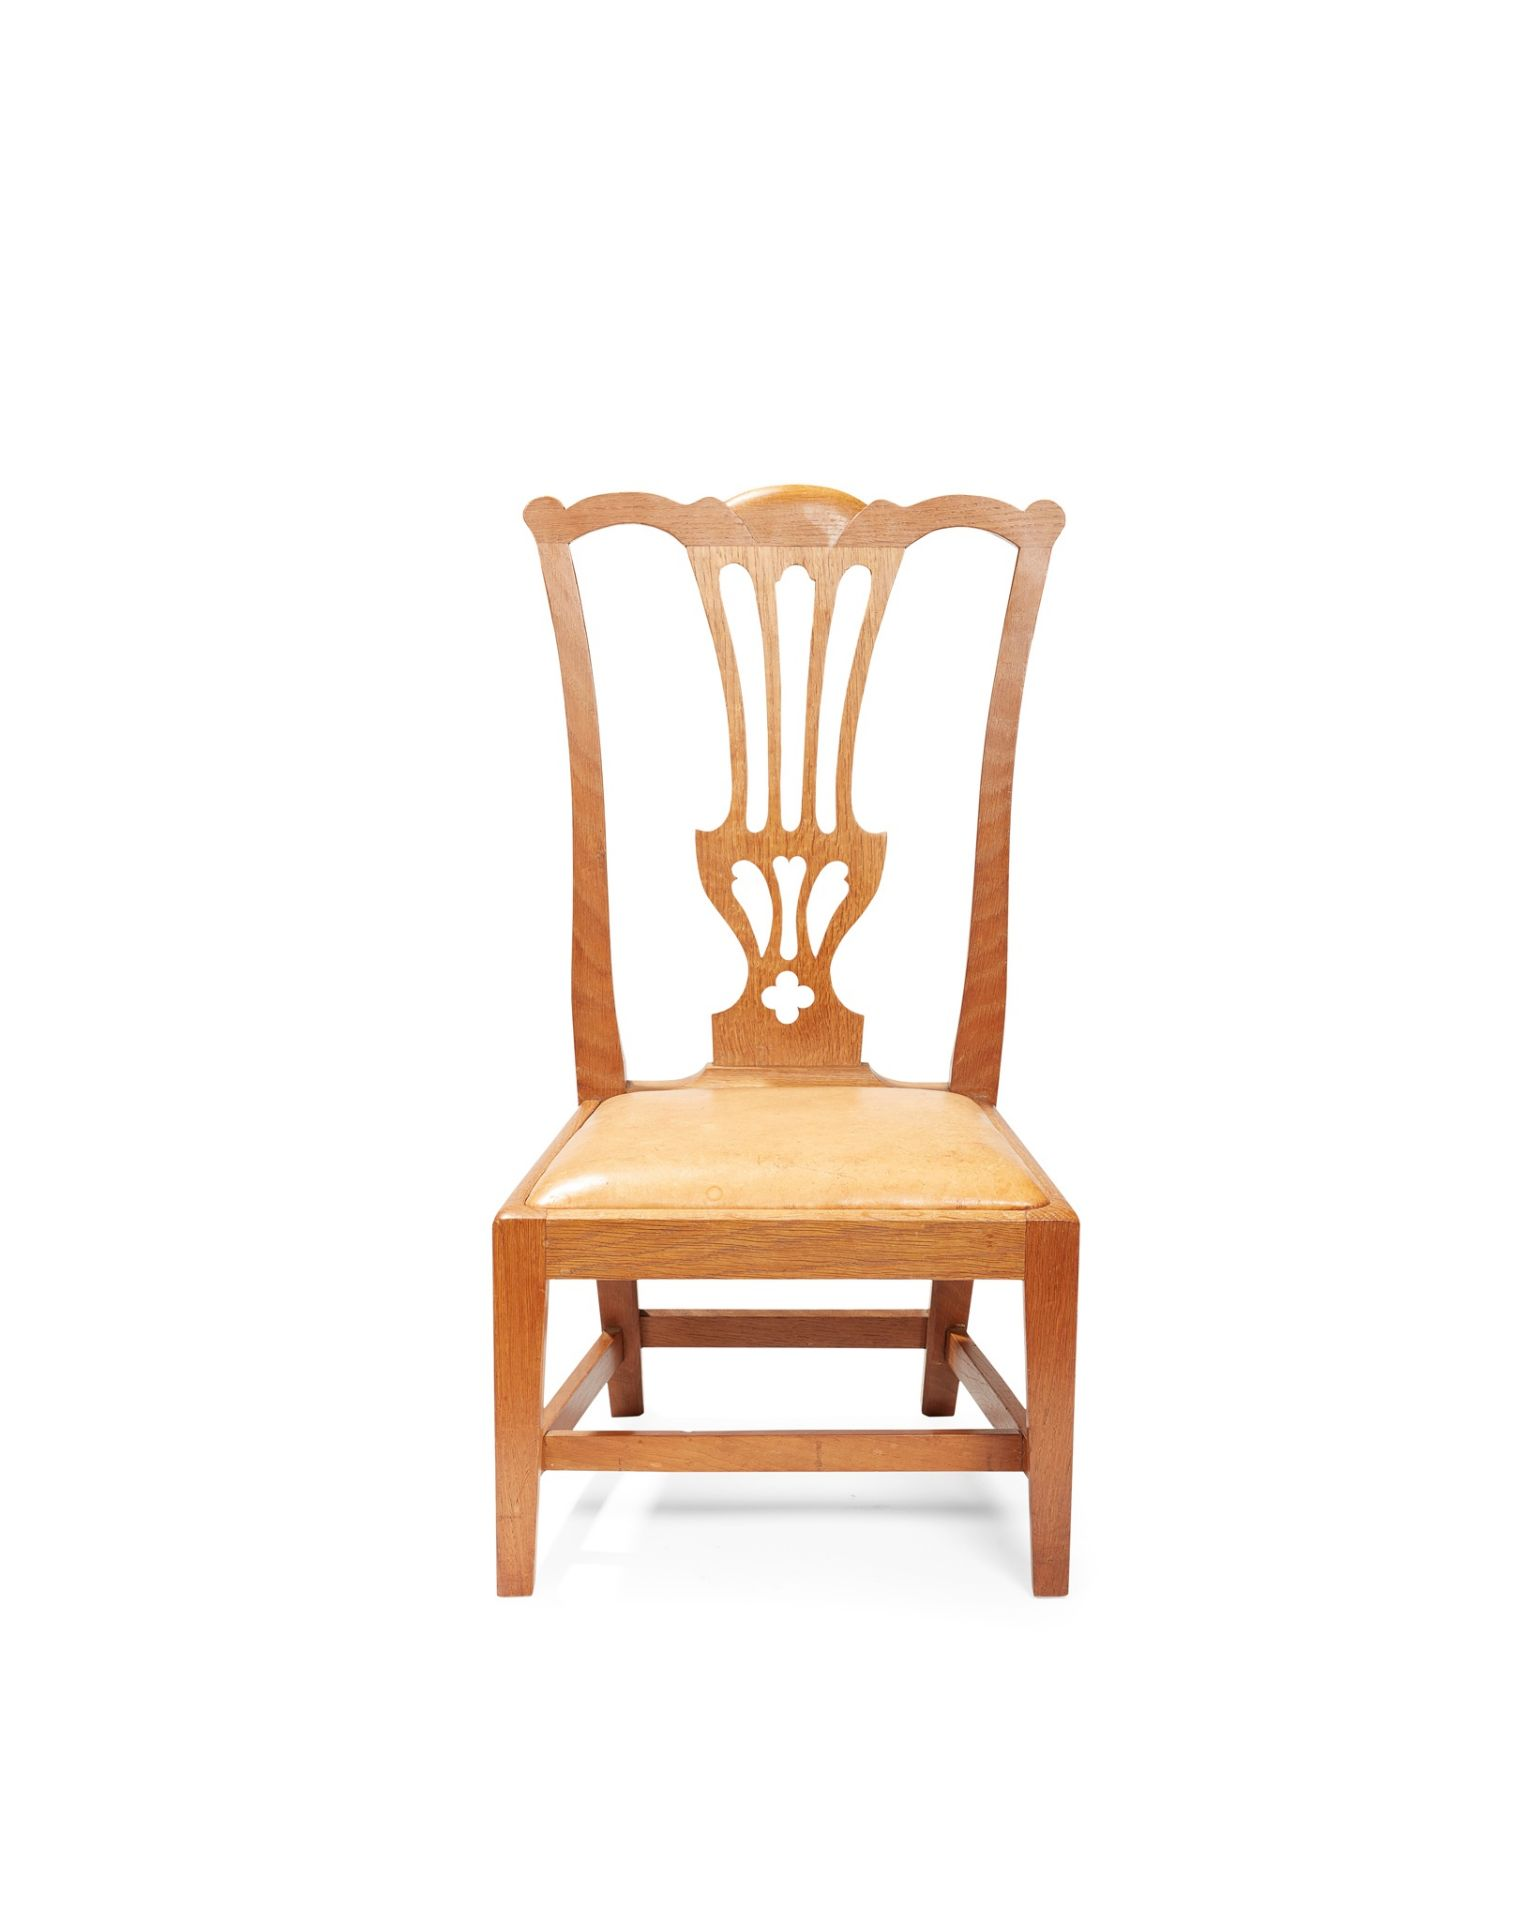 A SCOTTISH 'GOSSIP' CHAIR BY WHEELER OF ARNCROACH CIRCA 1920 - Image 2 of 2